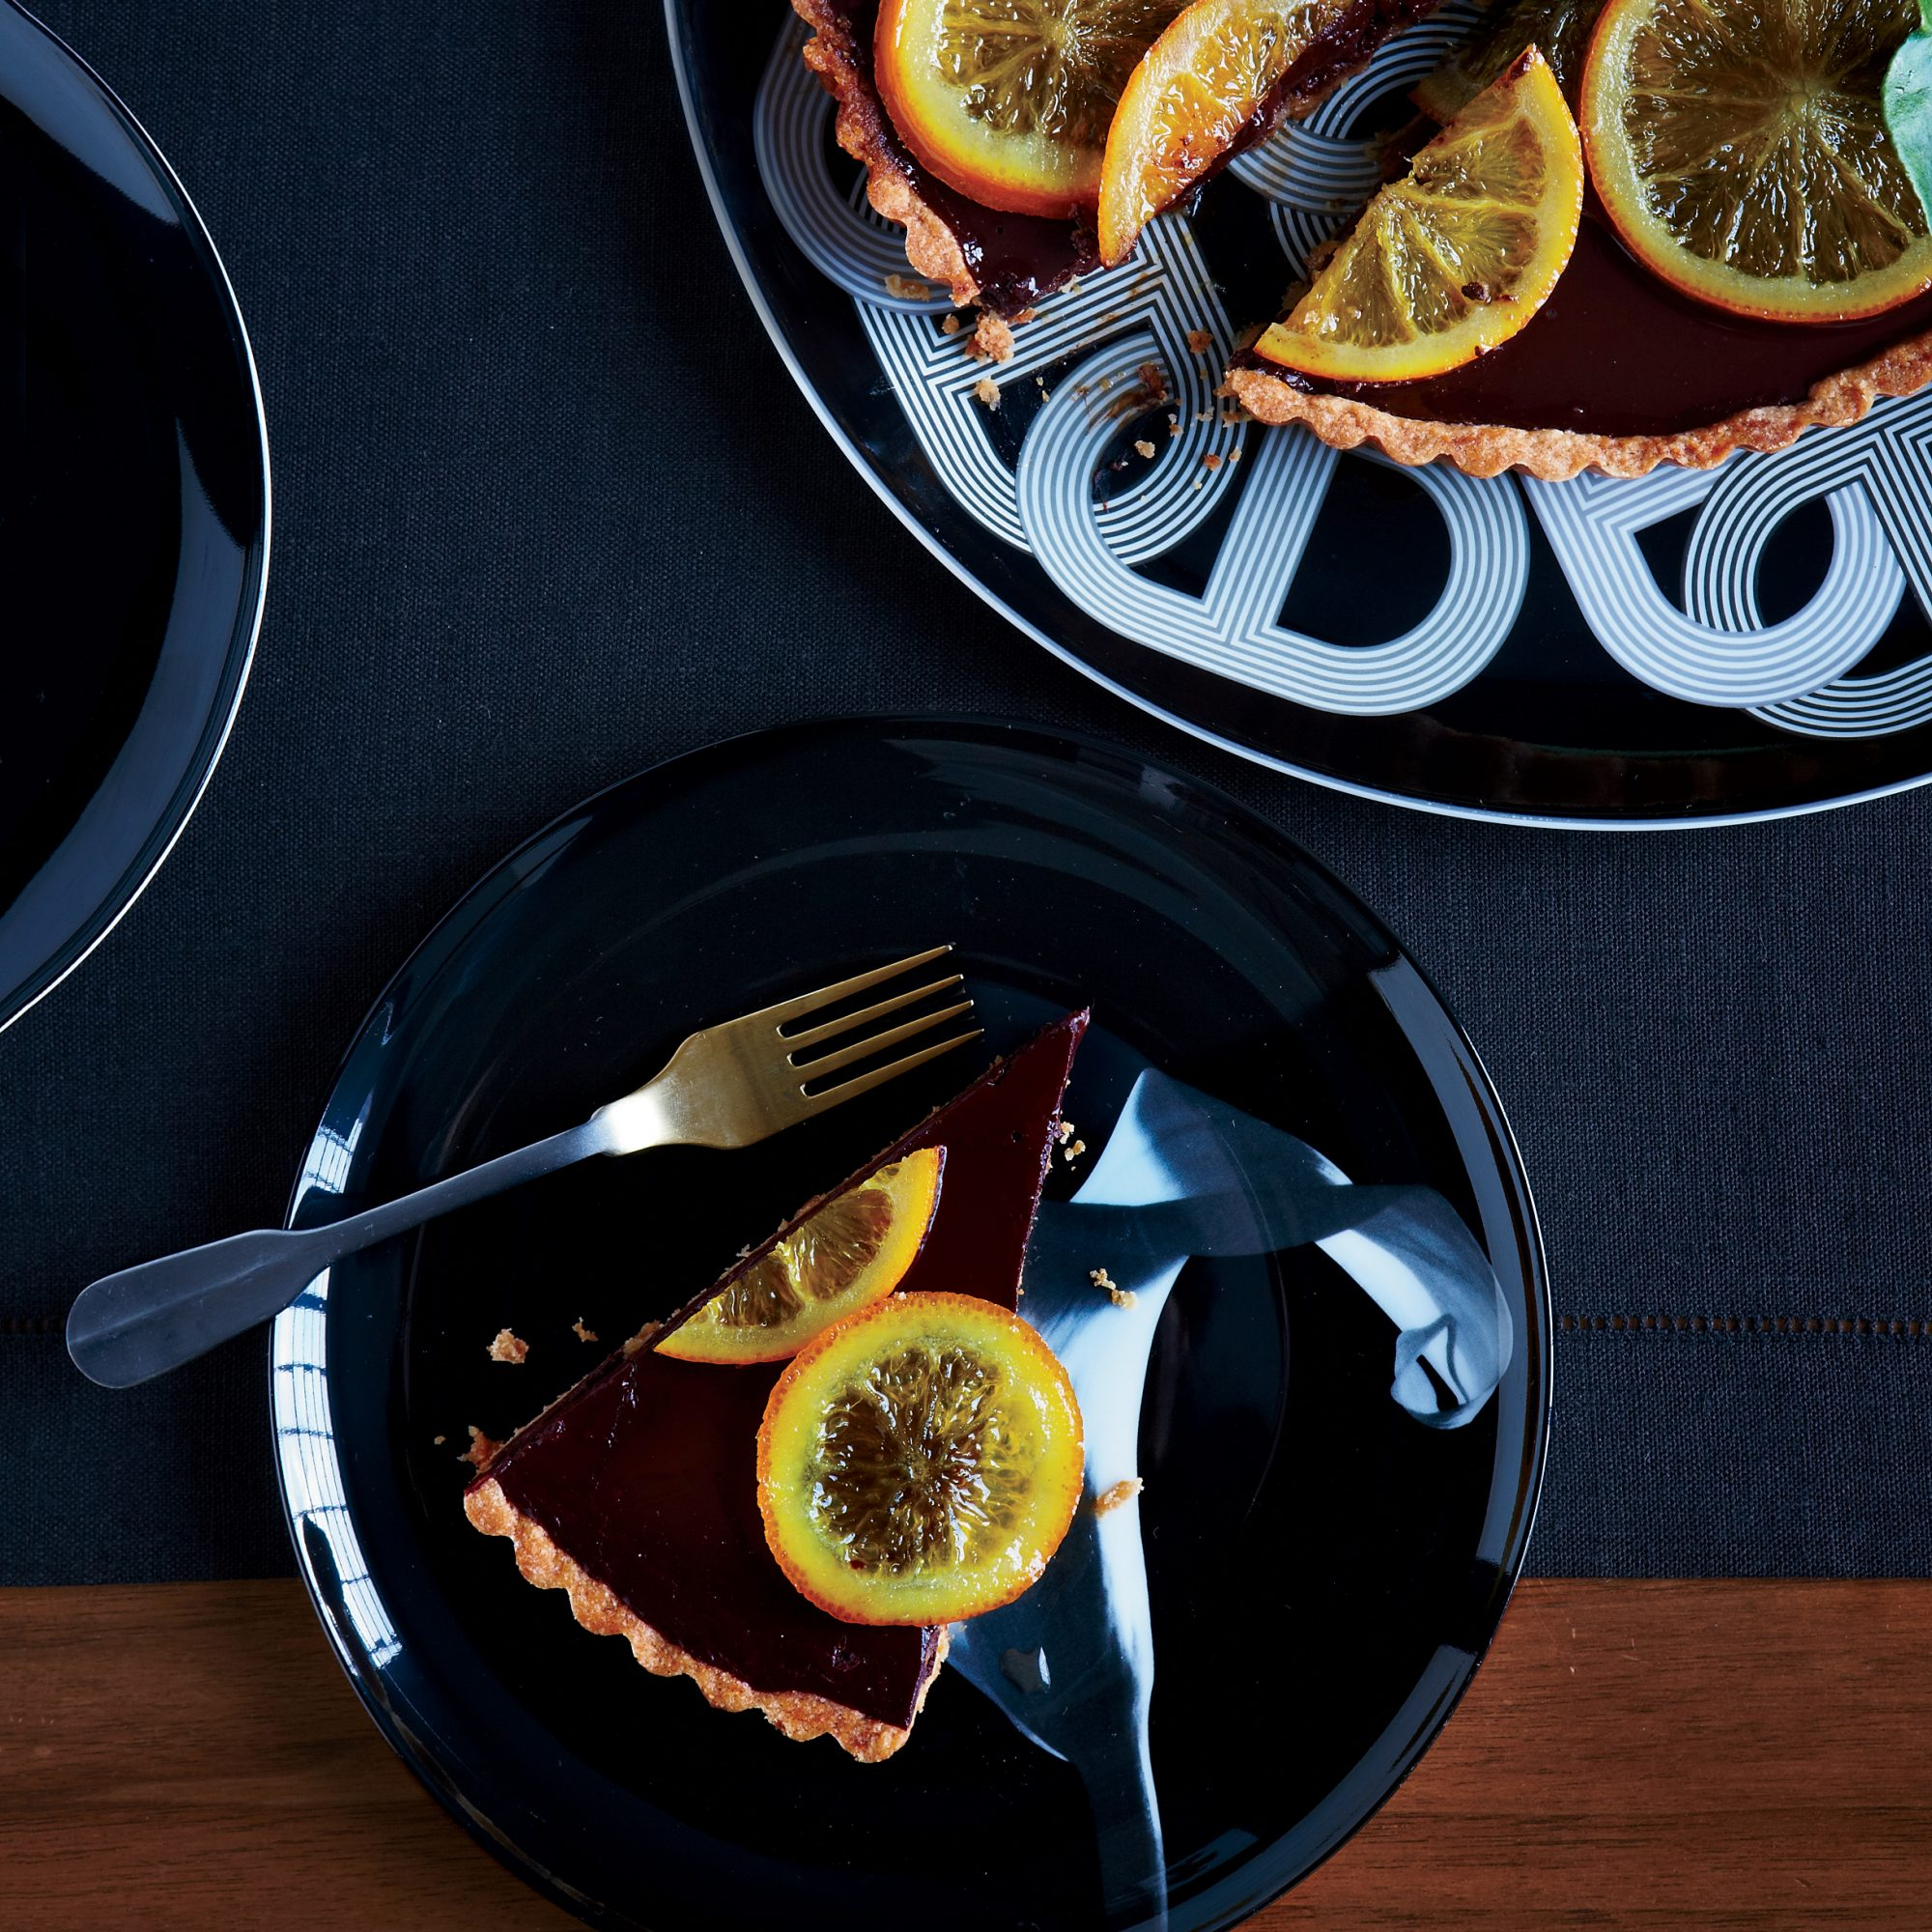 original-201312-r-bittersweet-chocolate-truffle-tart-with-candied-oranges.jpg